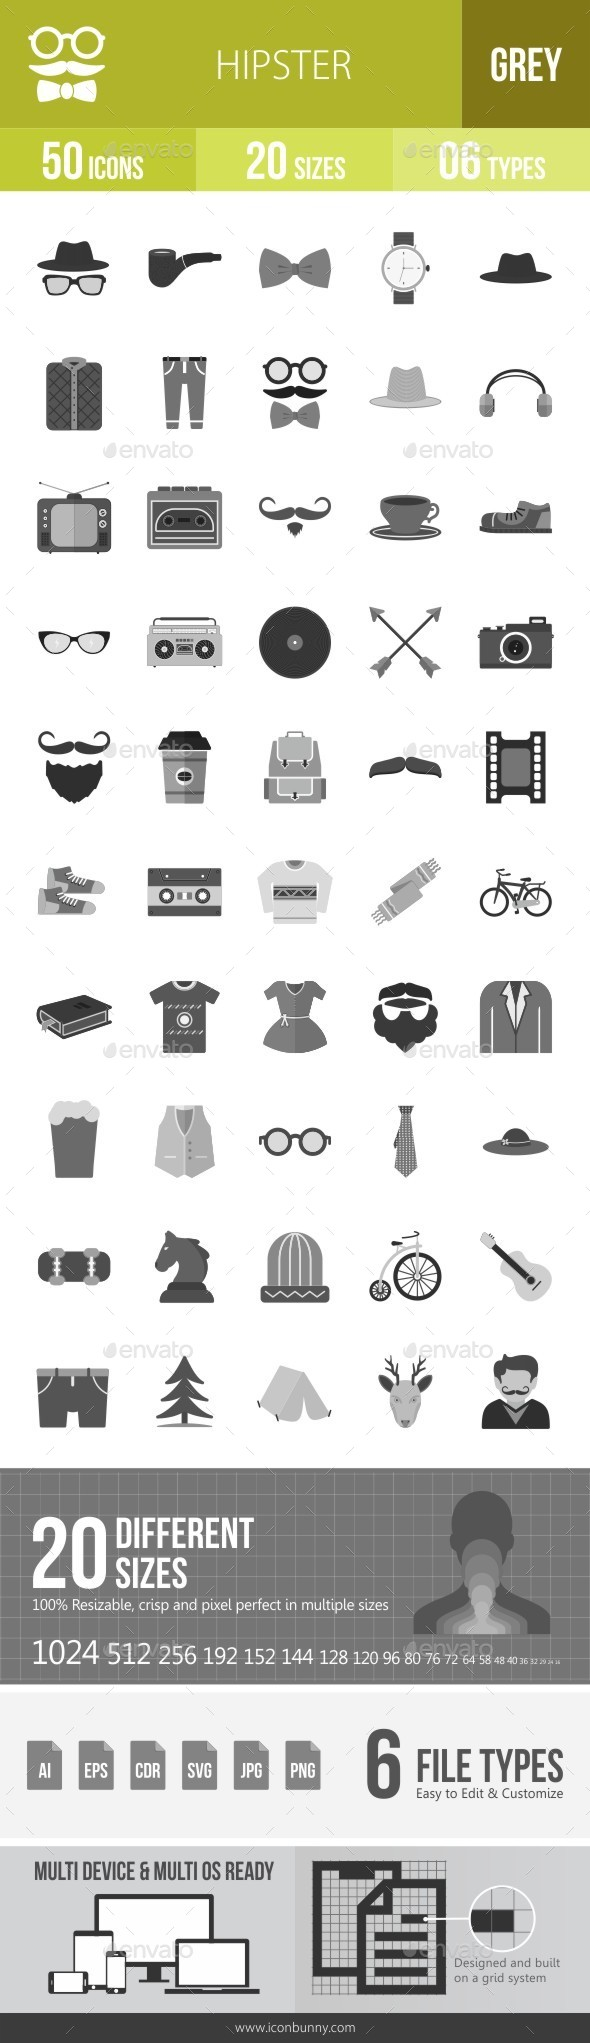 Hipster Greyscale Icons - Icons